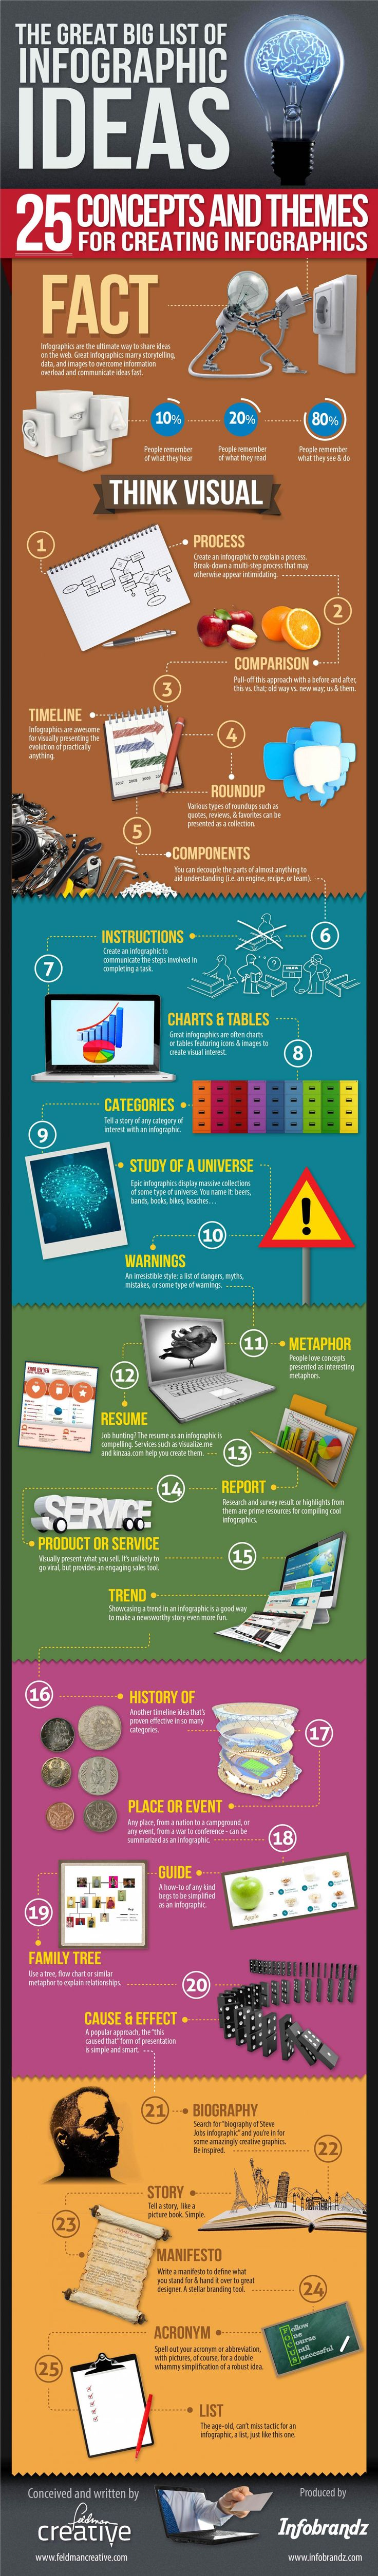 The Great Big List of Infographic Ideas, via @HubSpot